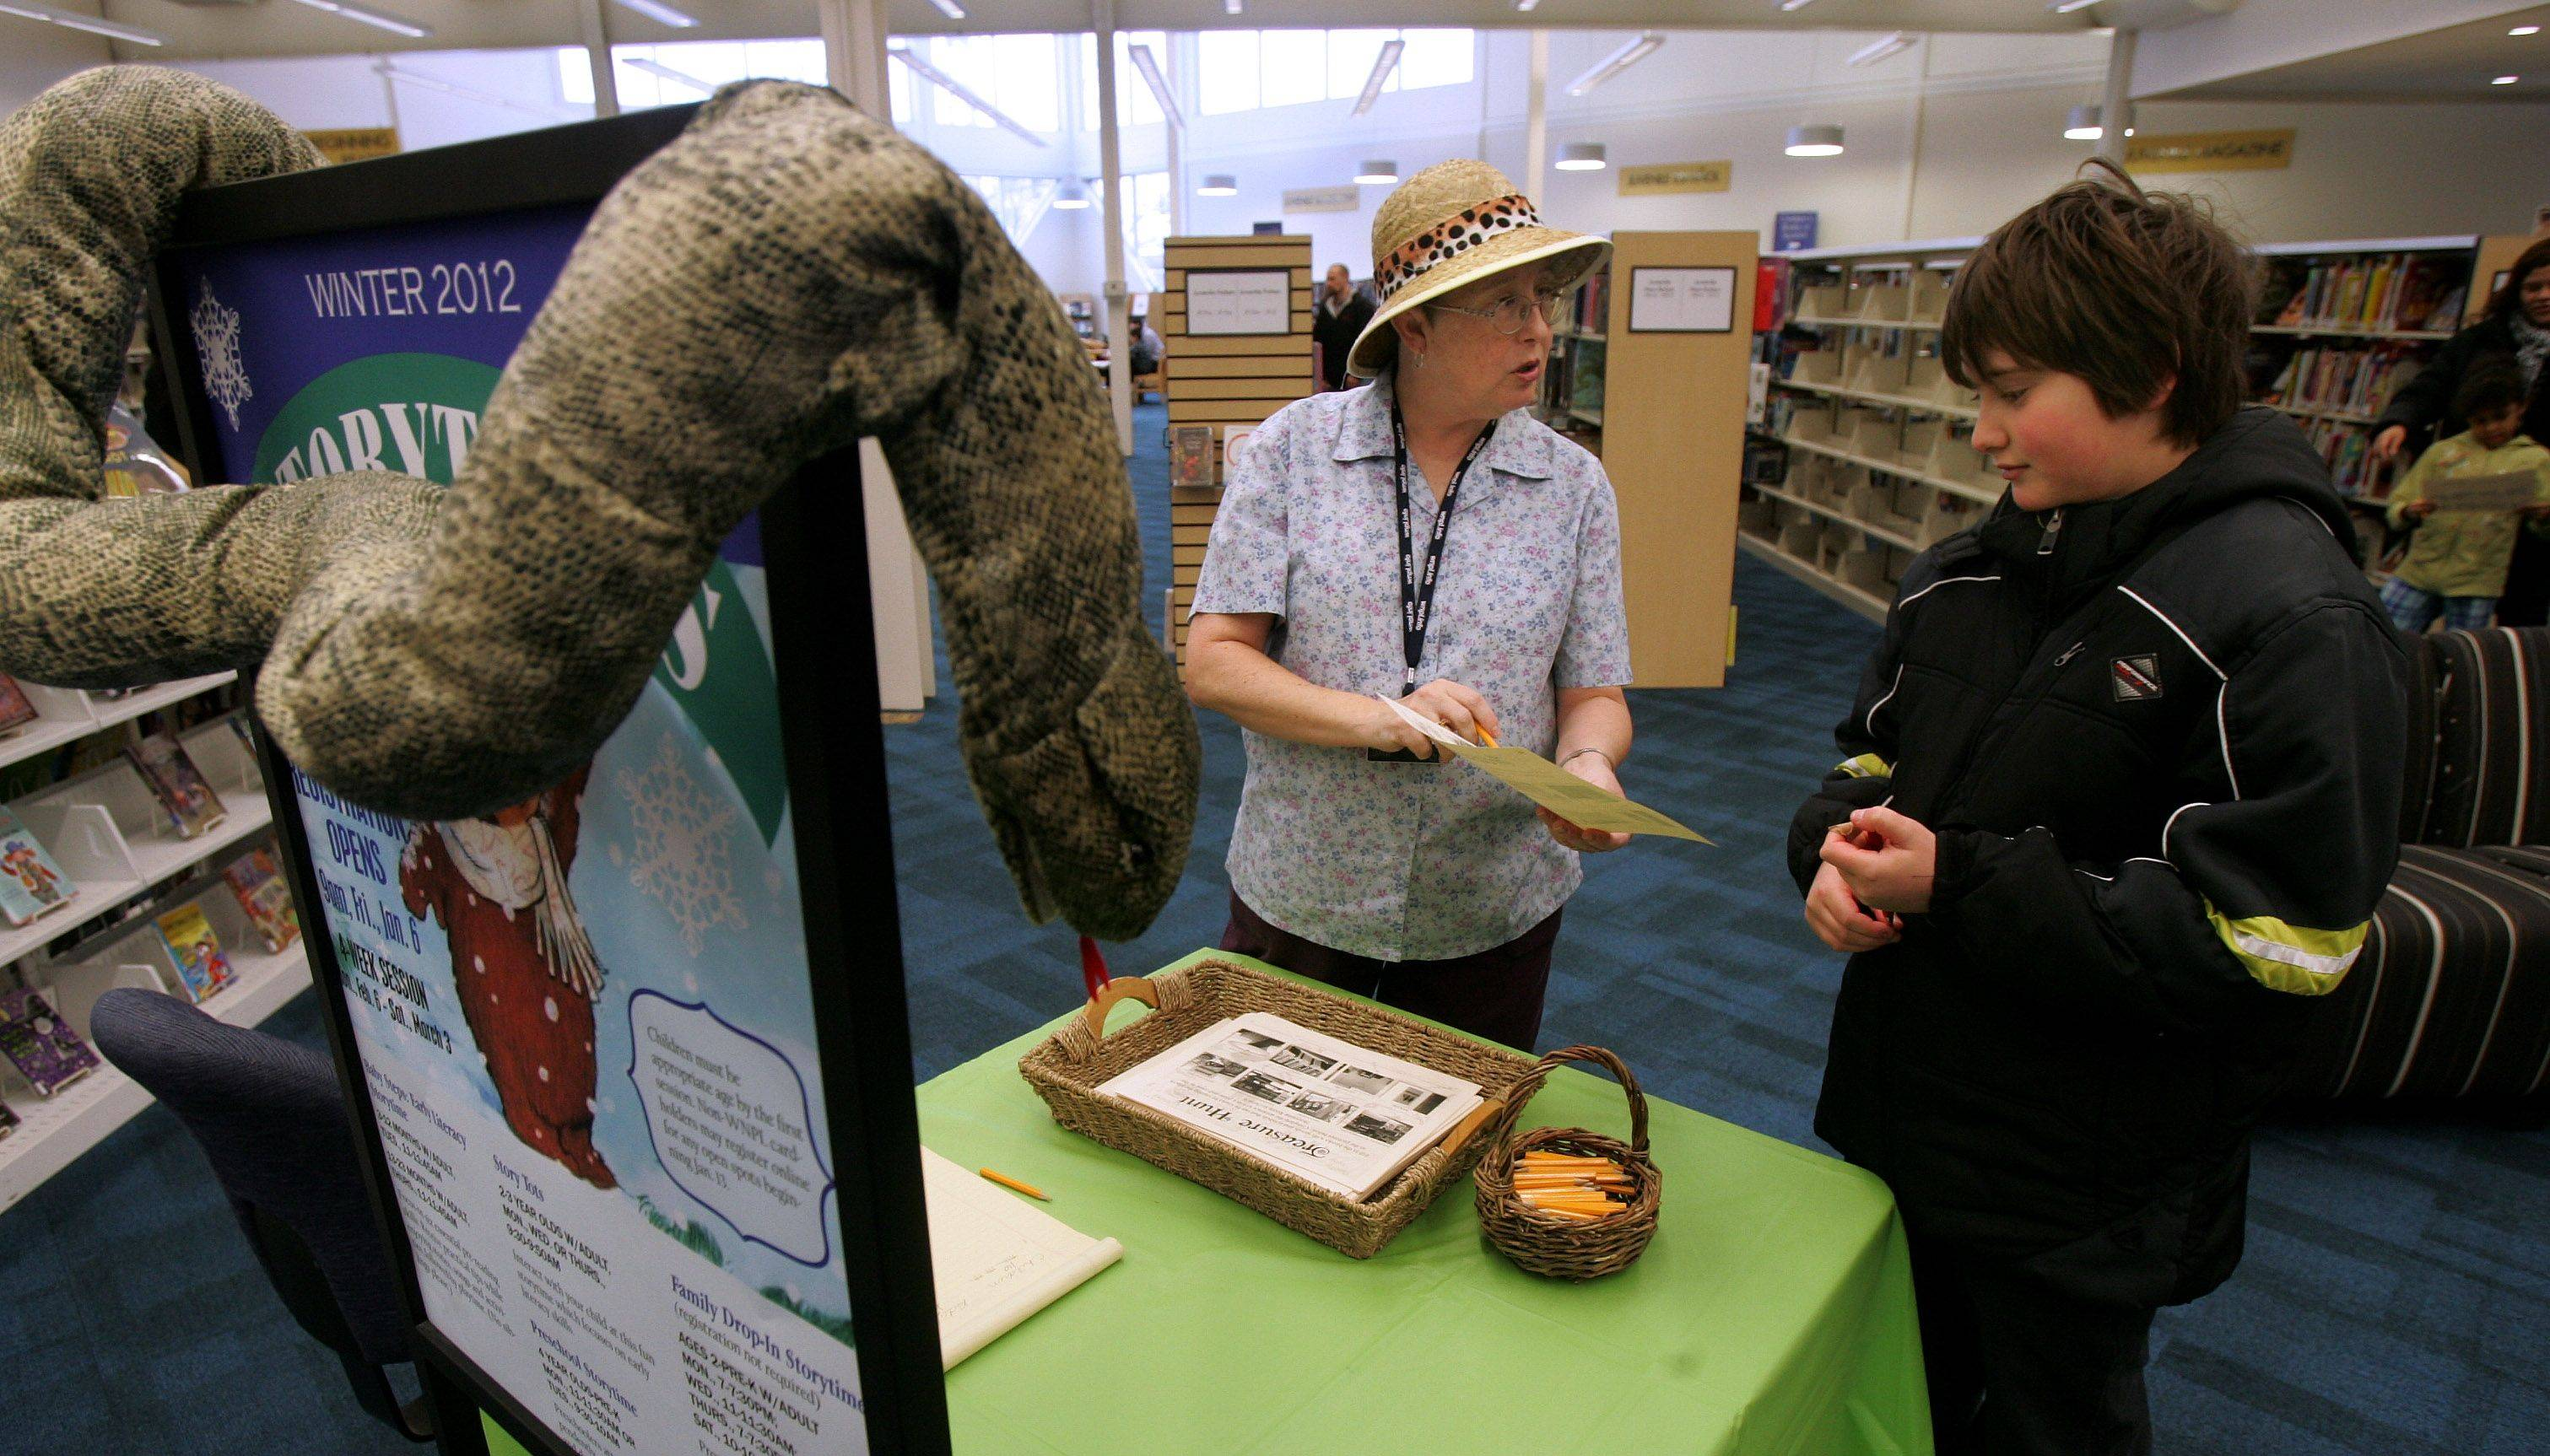 Volunteer Debbie Lessenberry explains the Treasure Hunt contest to Elias Driscoll, 10, during Sunday's grand reopening celebration at the Warren-Newport Public Library in Gurnee.